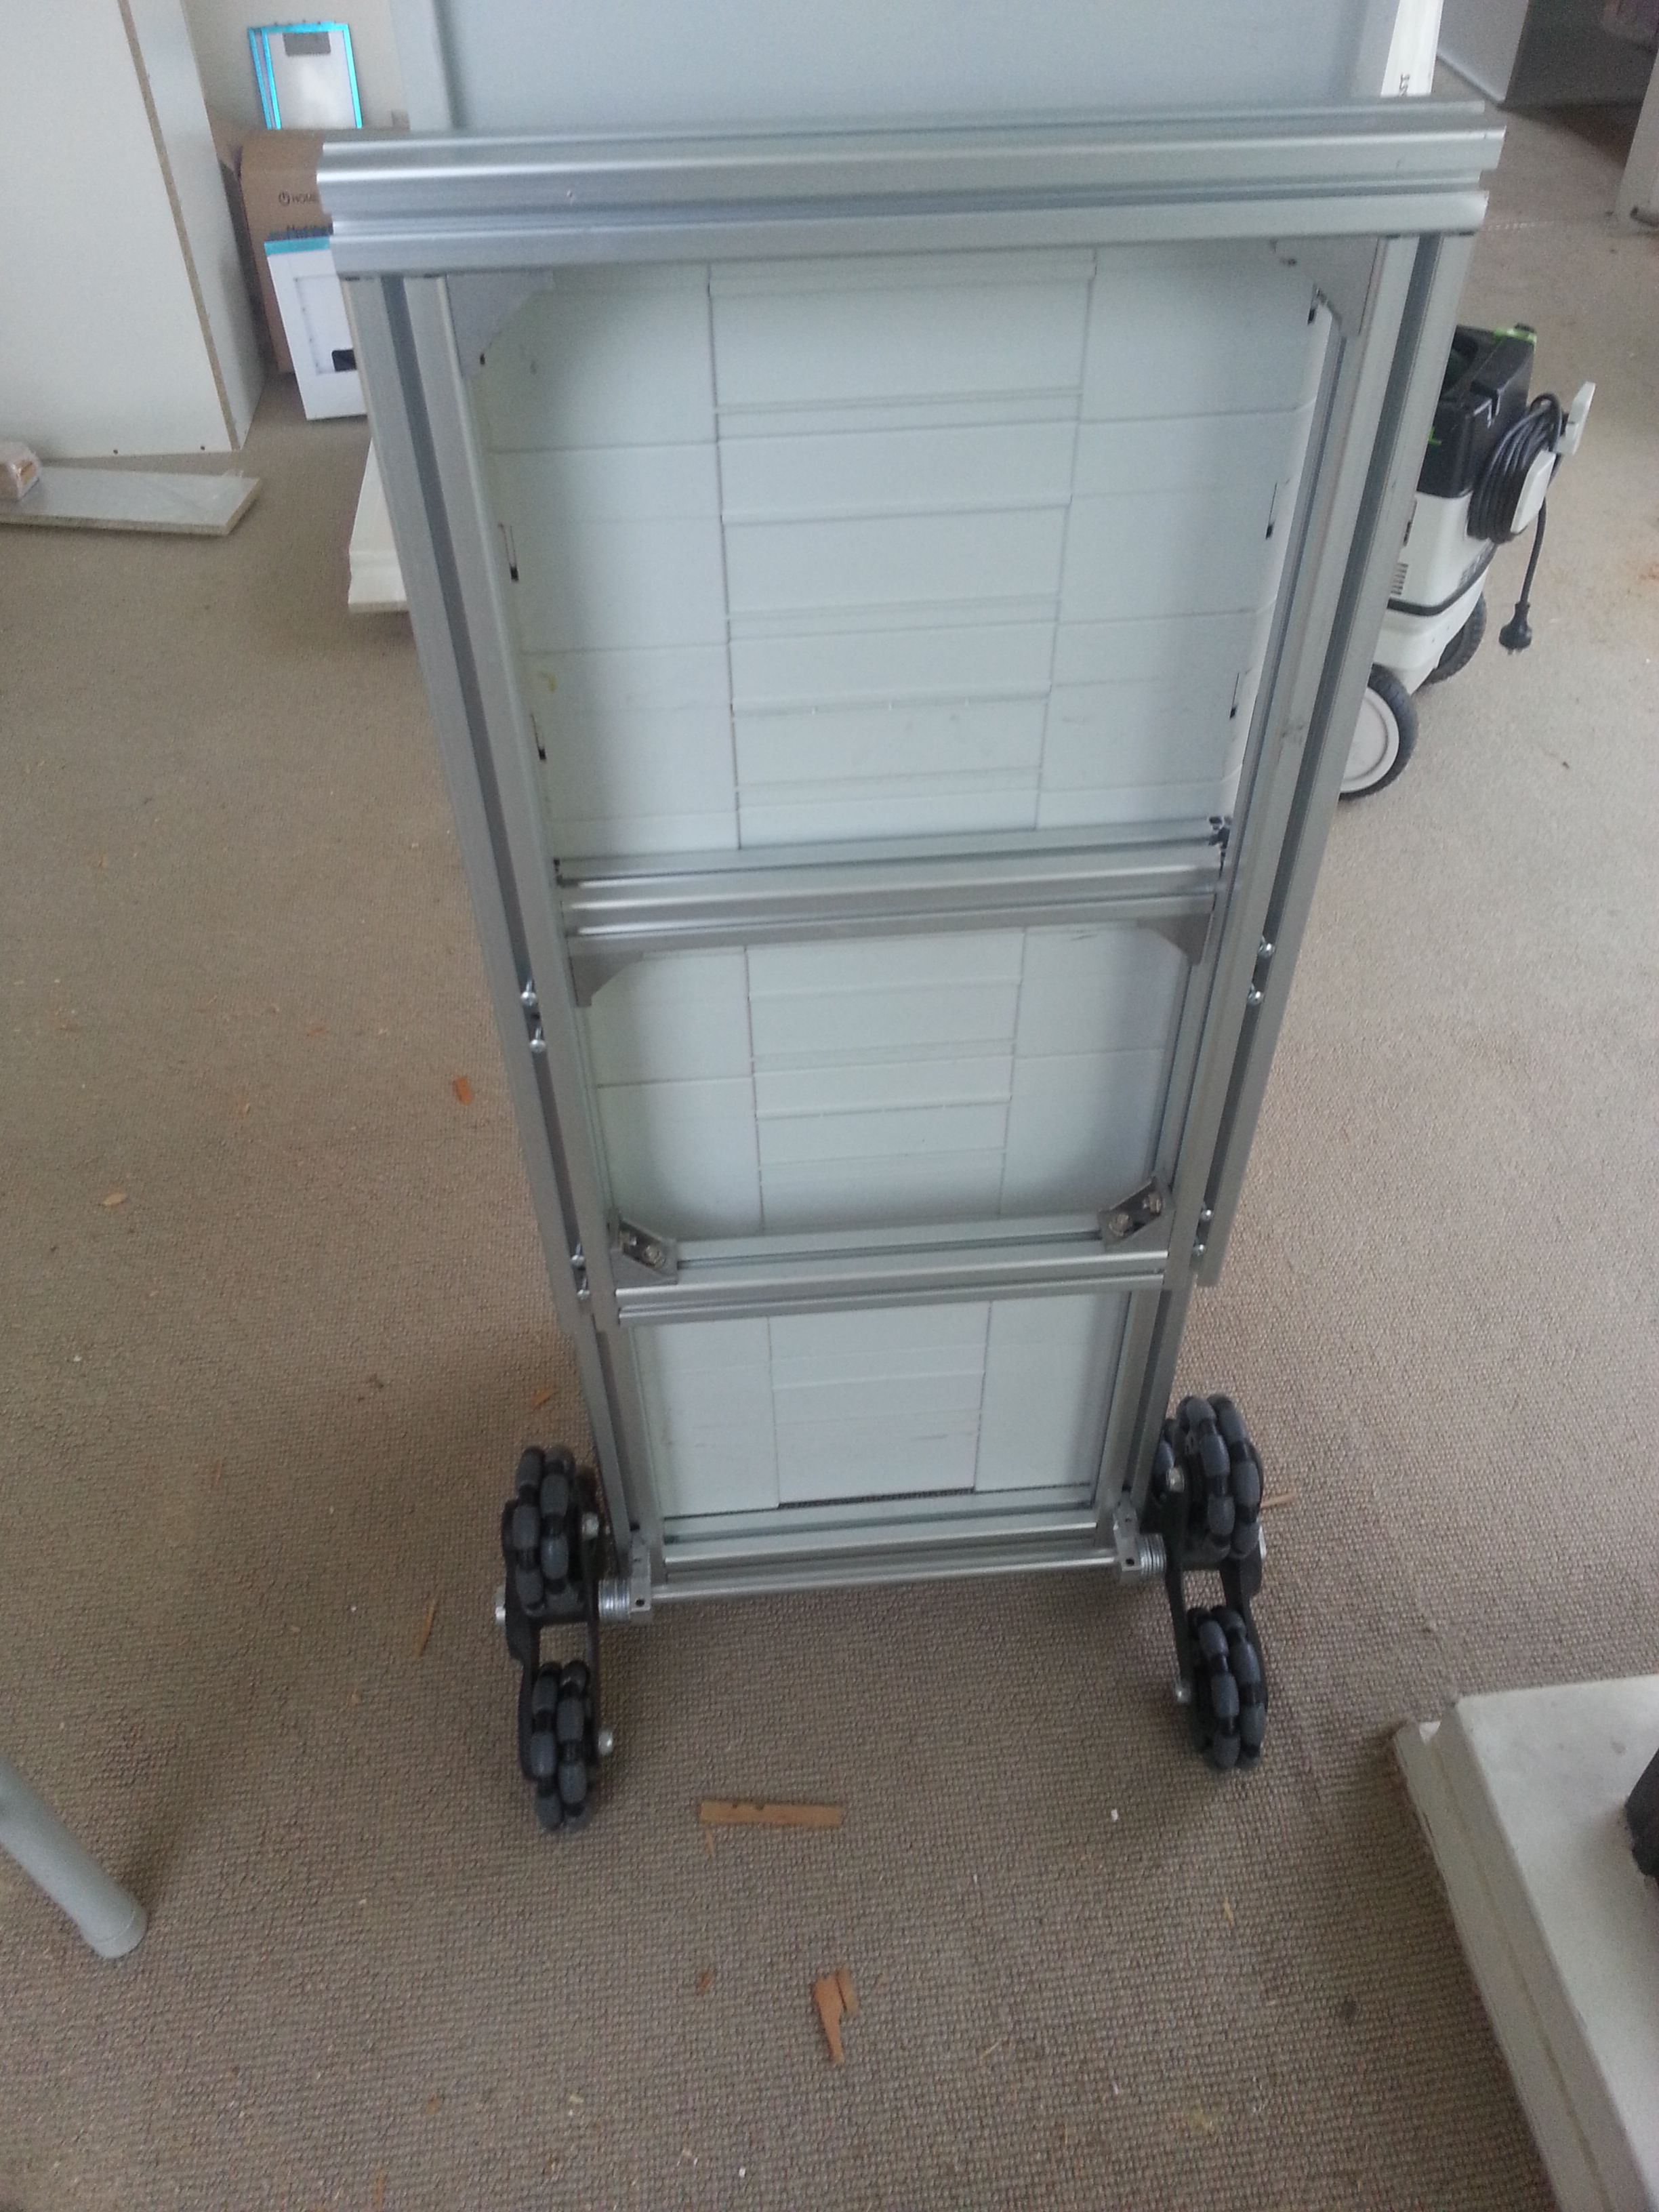 Diy Aufbewahrung Werkzeug Custom Trolley For Systainers And Modified Mft Top To Be